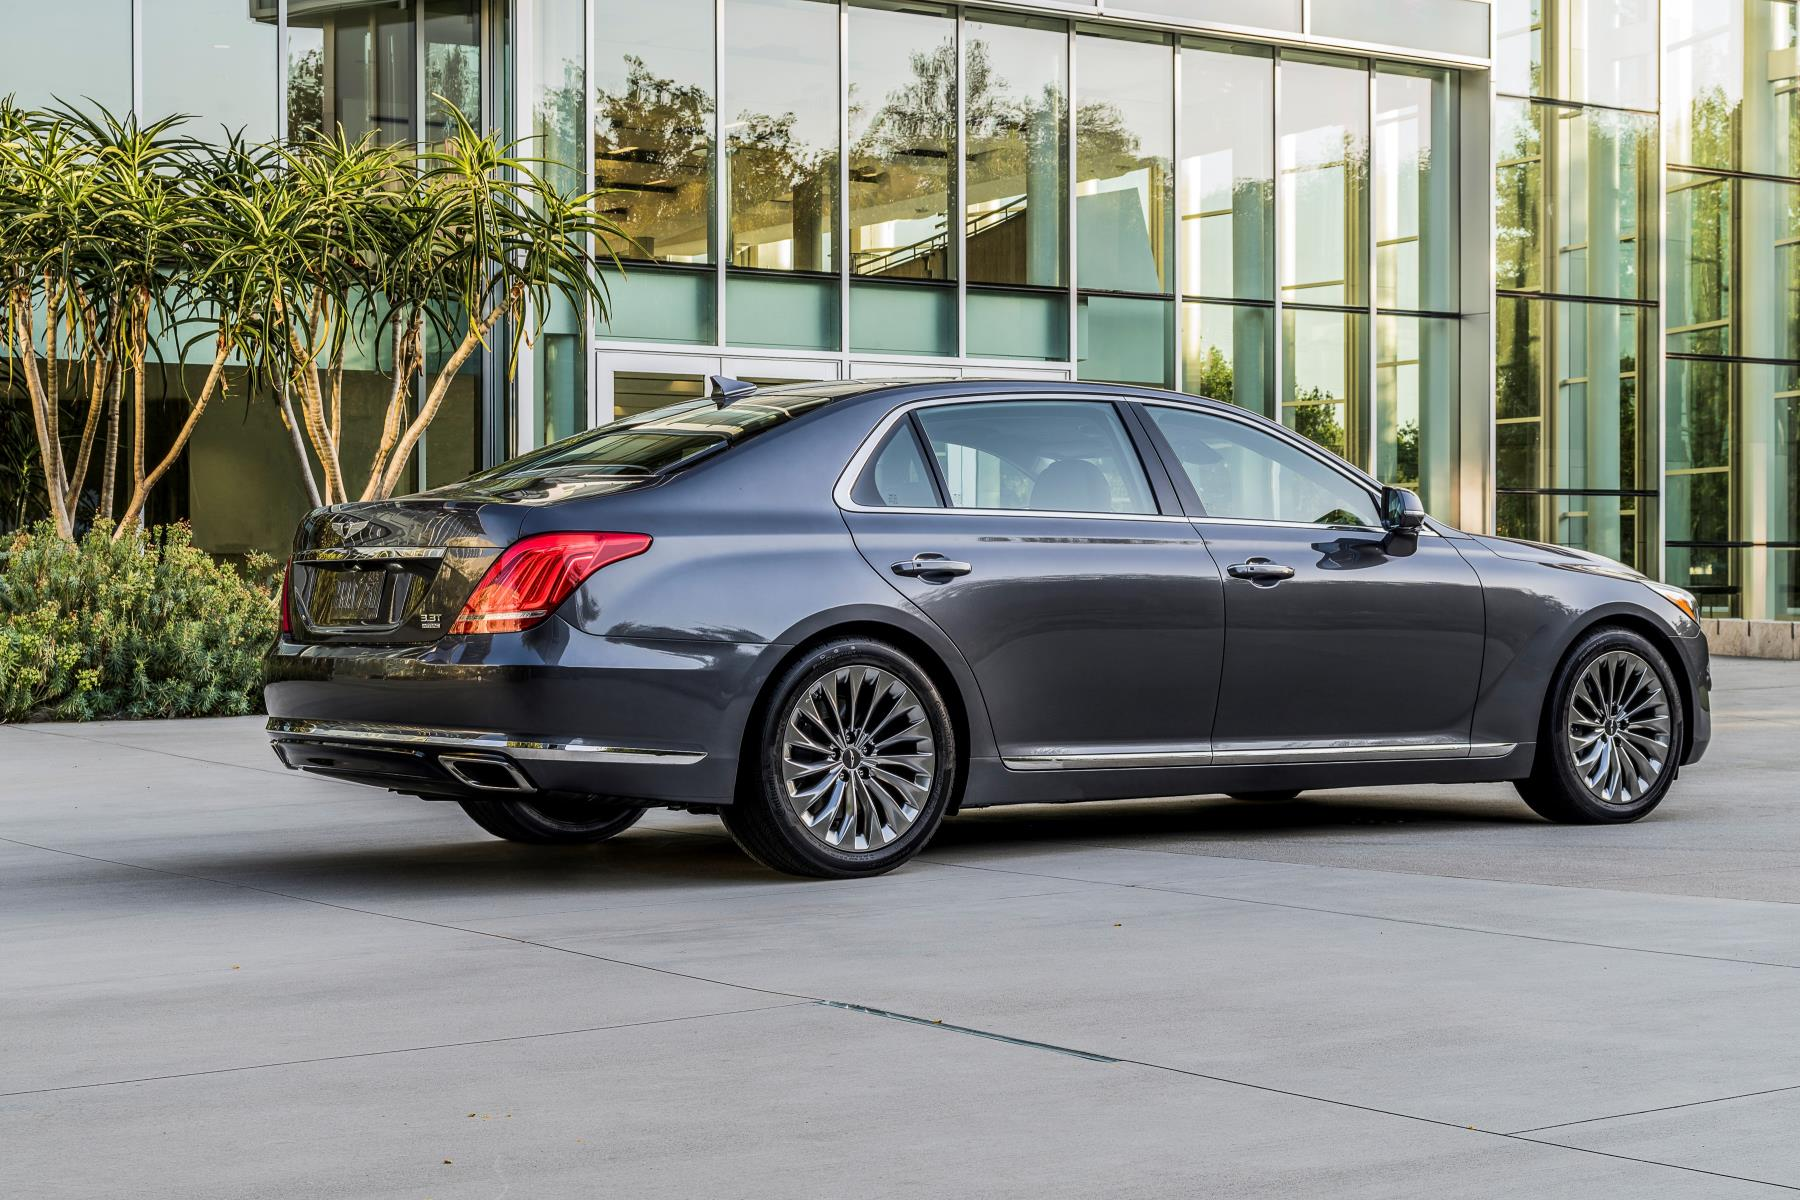 Genesis G90 US Pricing Announced, Starts At $68,100 ...